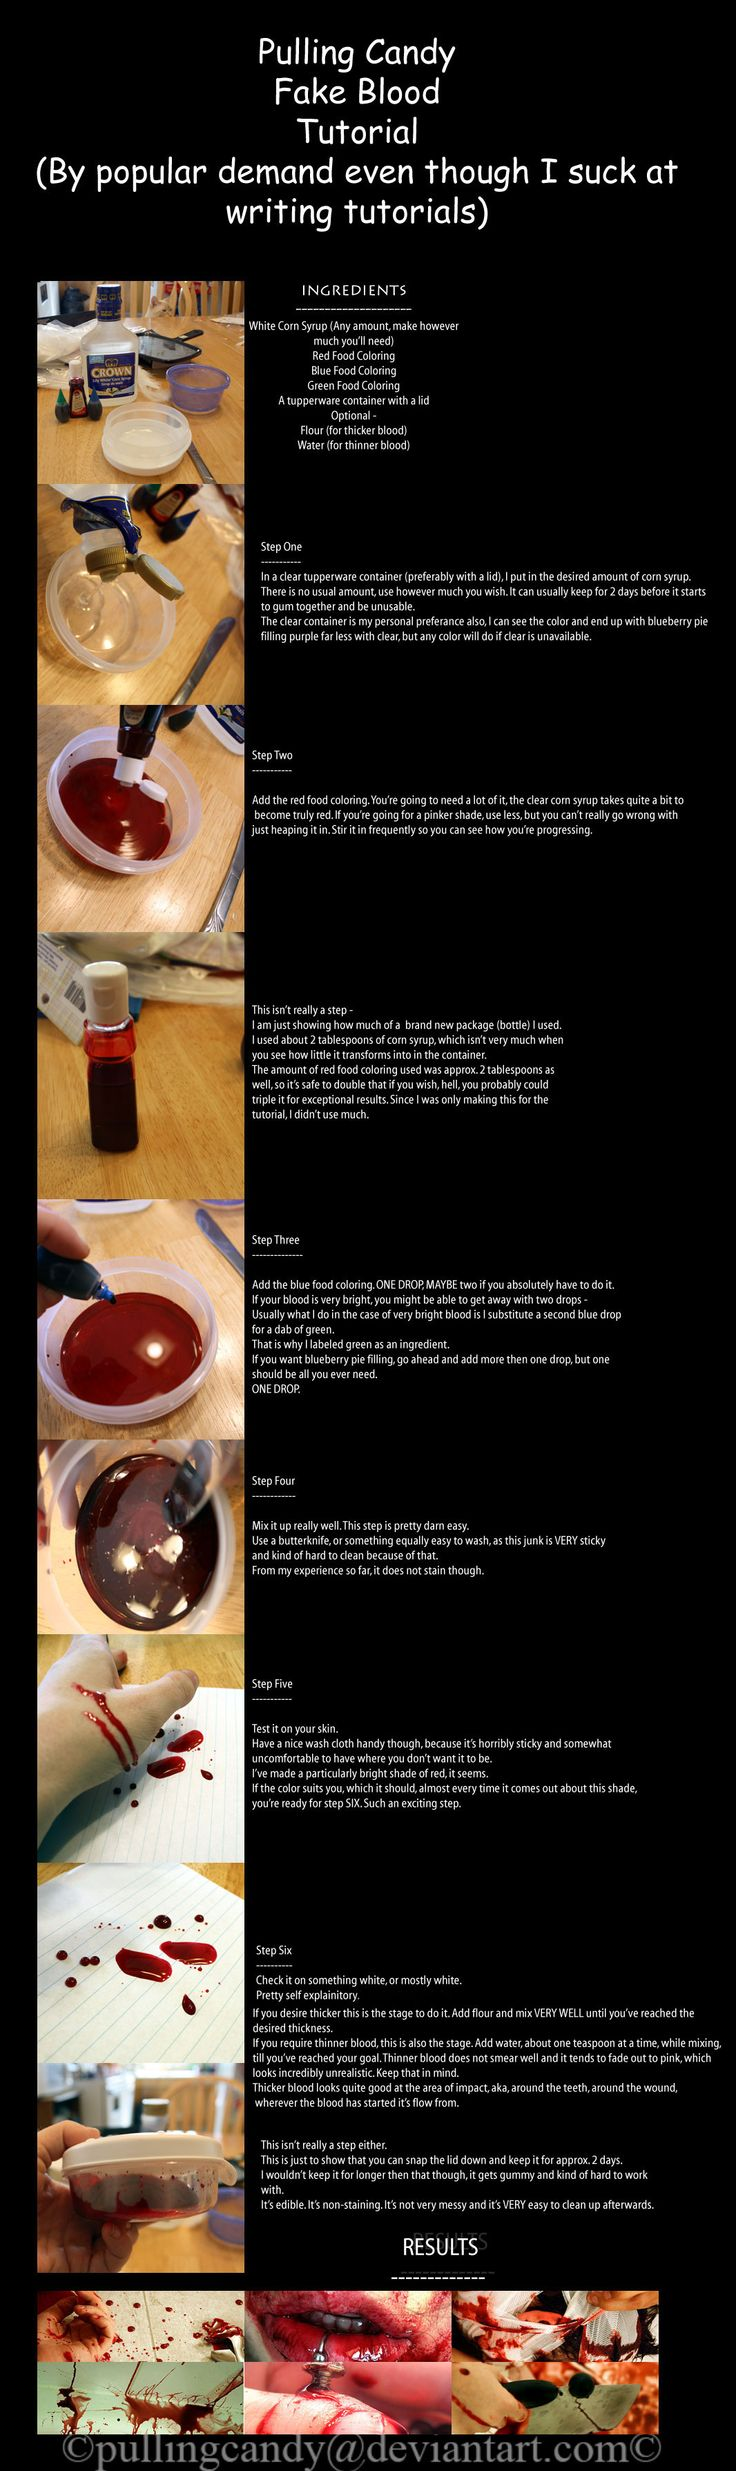 Fake blood tutorial